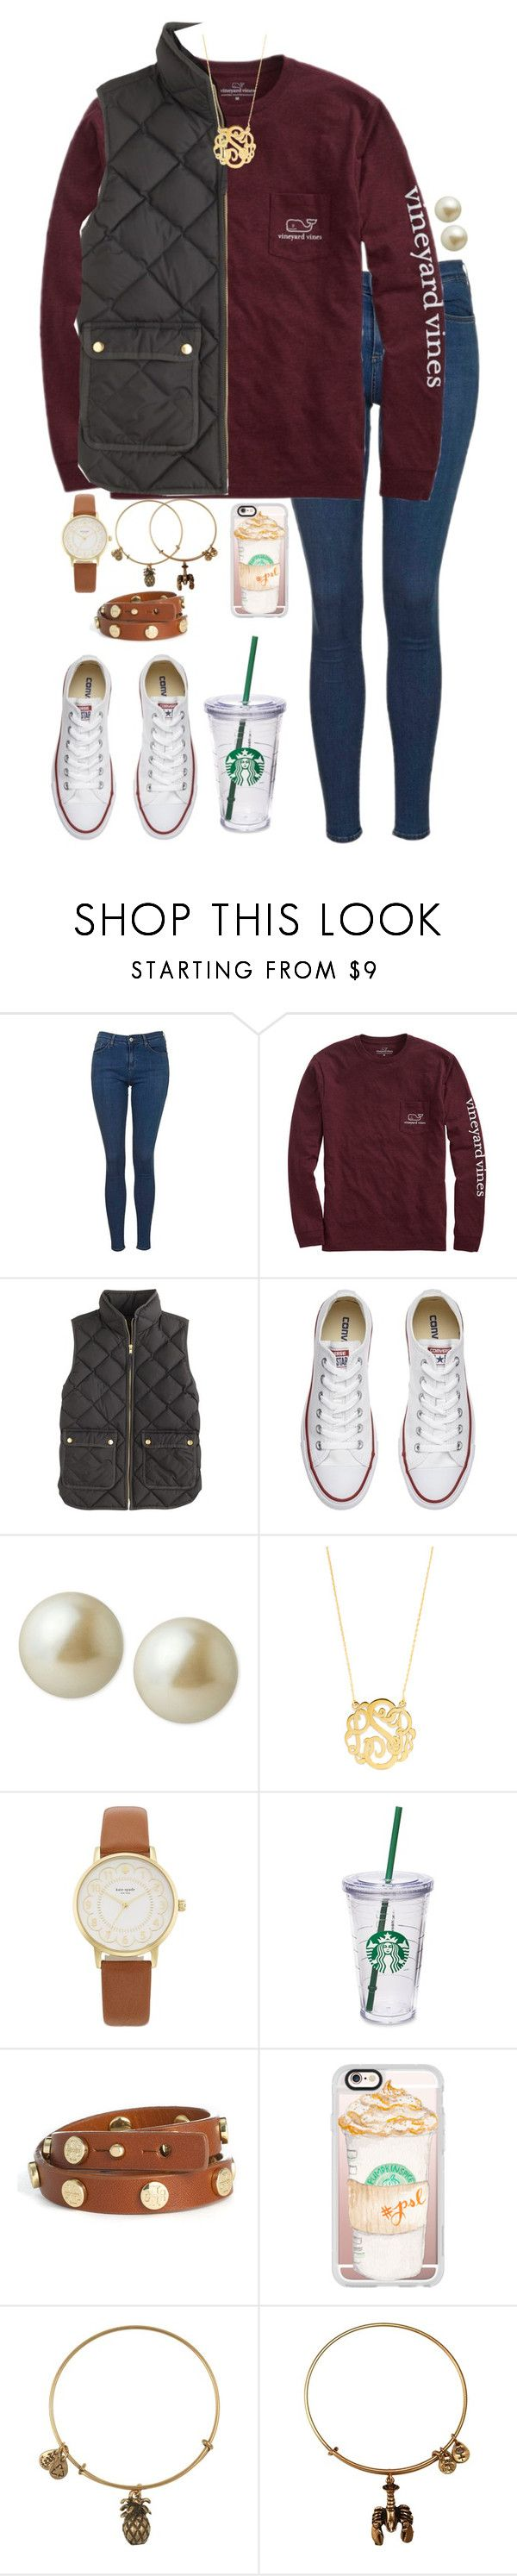 """""""Halloween contest entry one RTD"""" by lbkatie17 ❤ liked on Polyvore featuring Topshop, Vineyard Vines, J.Crew, Converse, Carolee, BaubleBar, Kate Spade, Starbucks, Tory Burch and Casetify"""